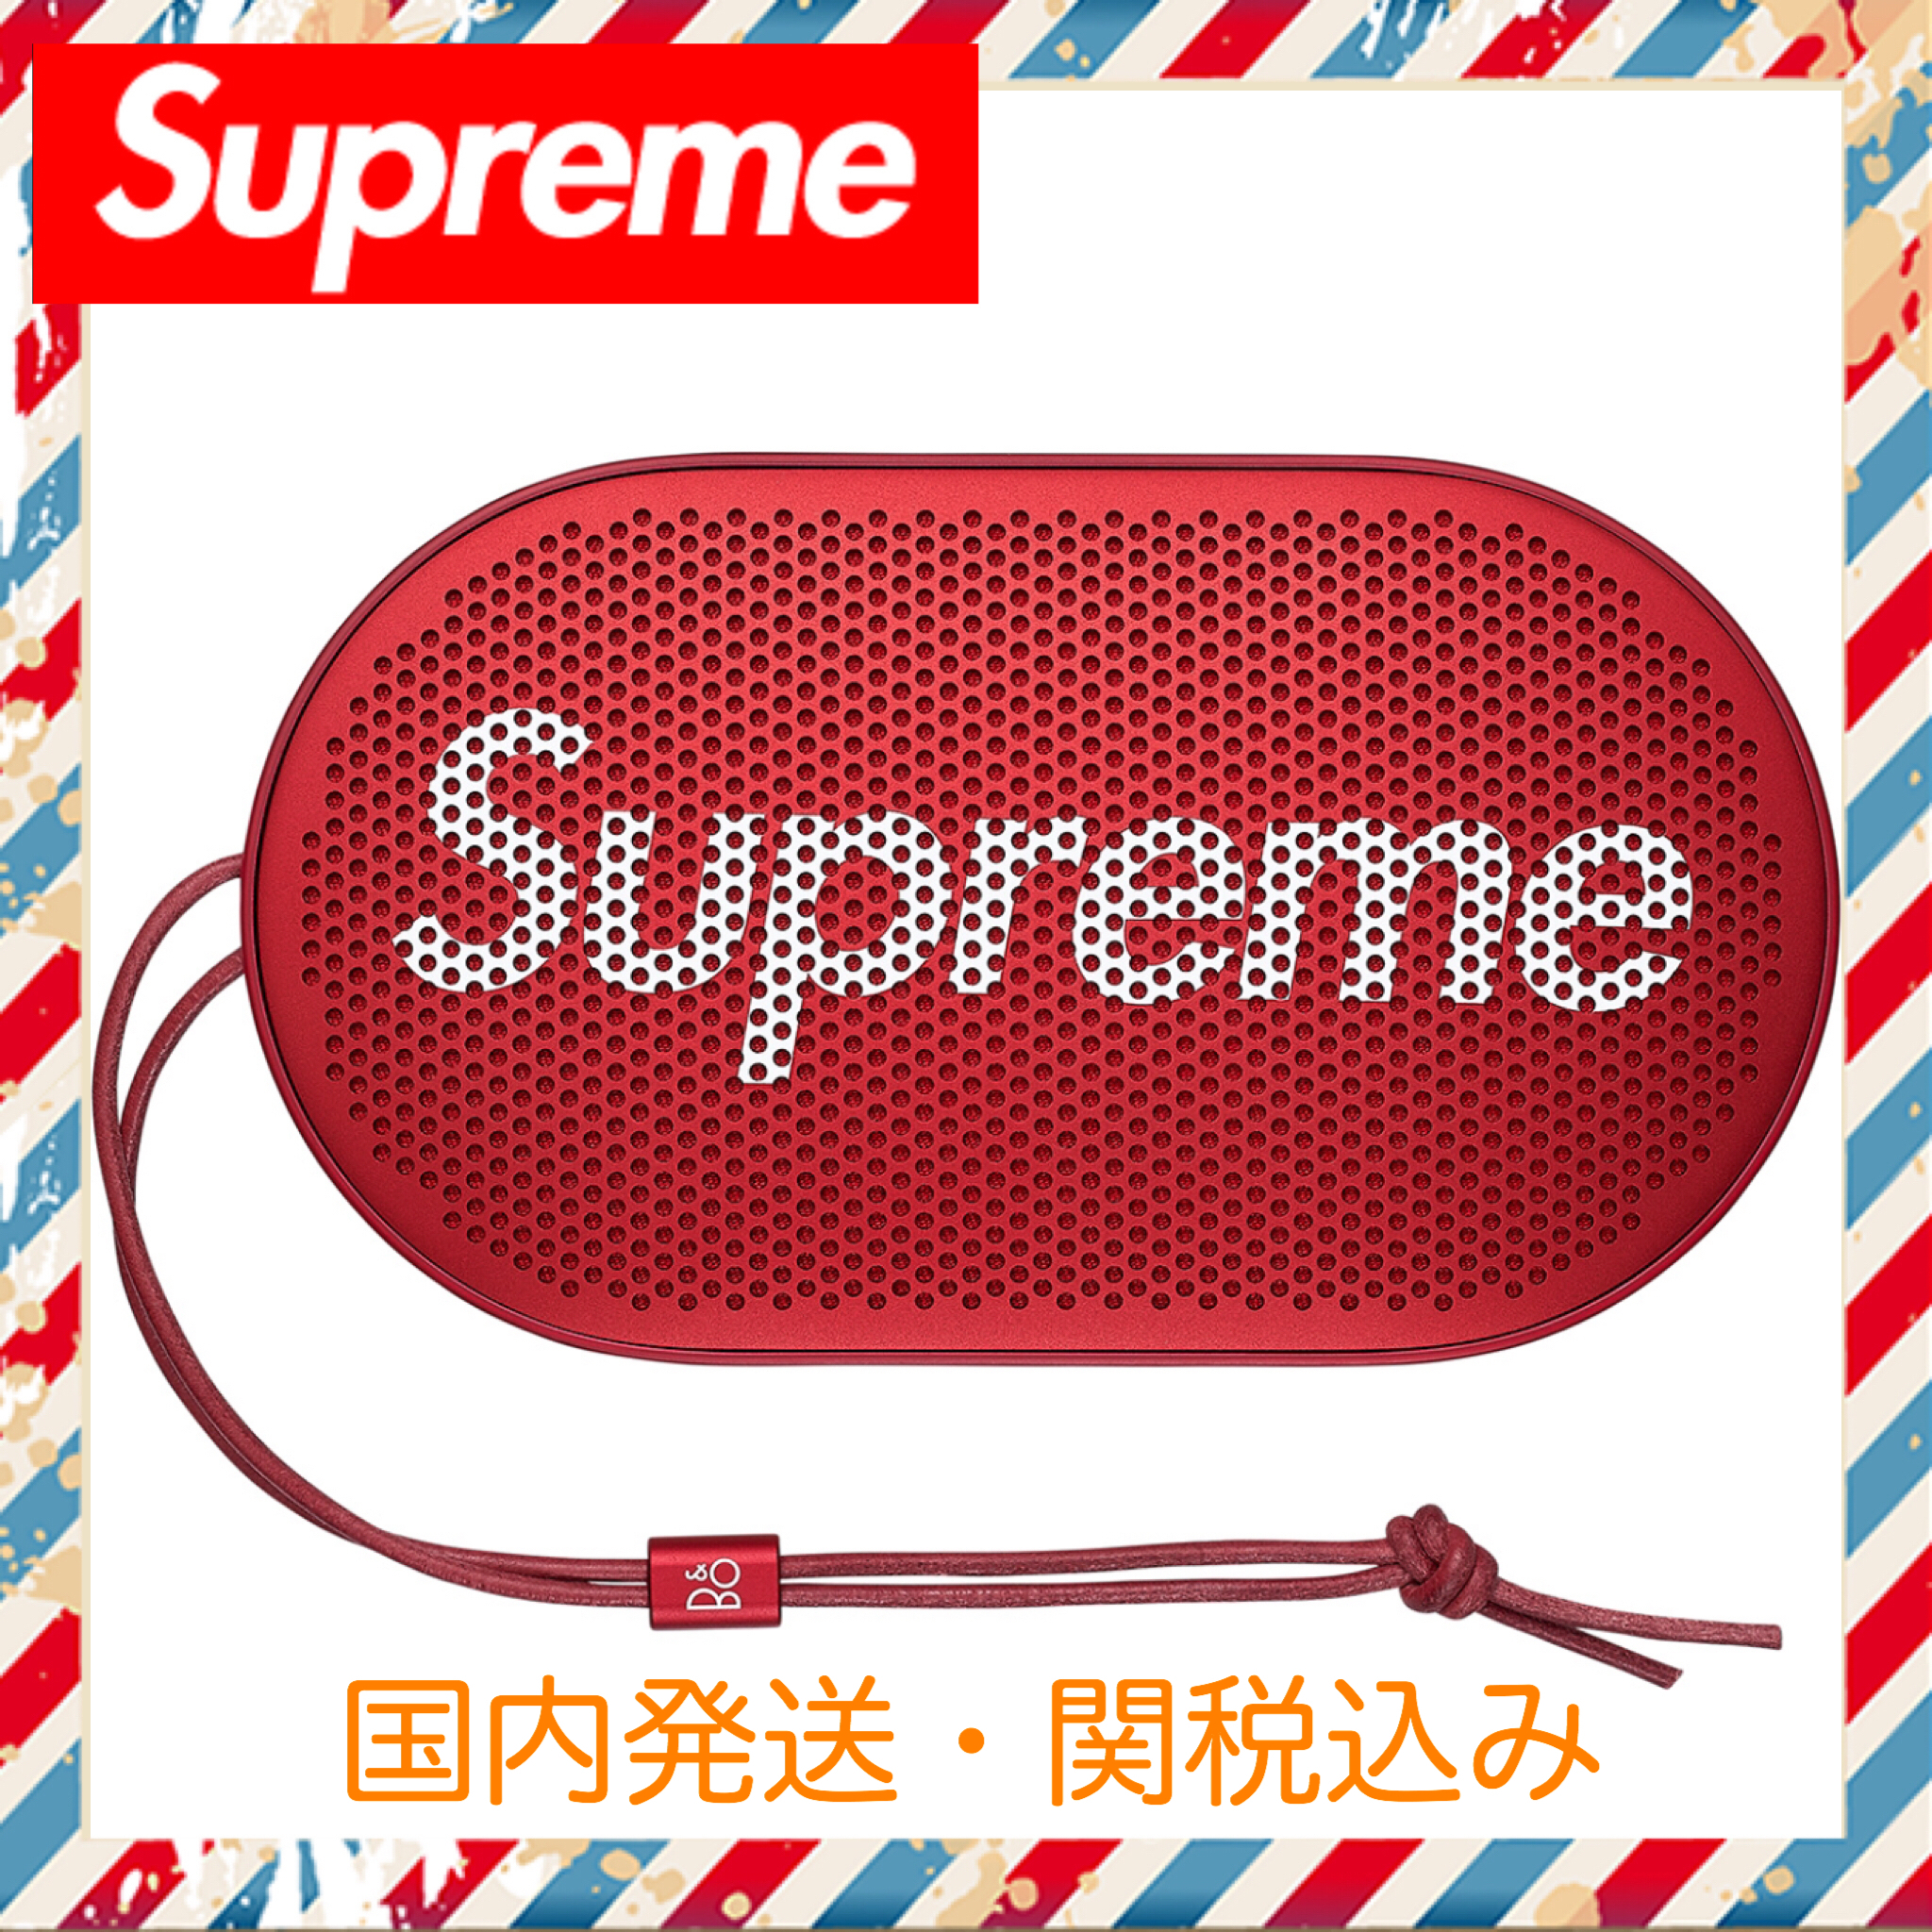 【国内発送】Supreme/B&Q PLAY by Bang & Olufsen P2 Speaker